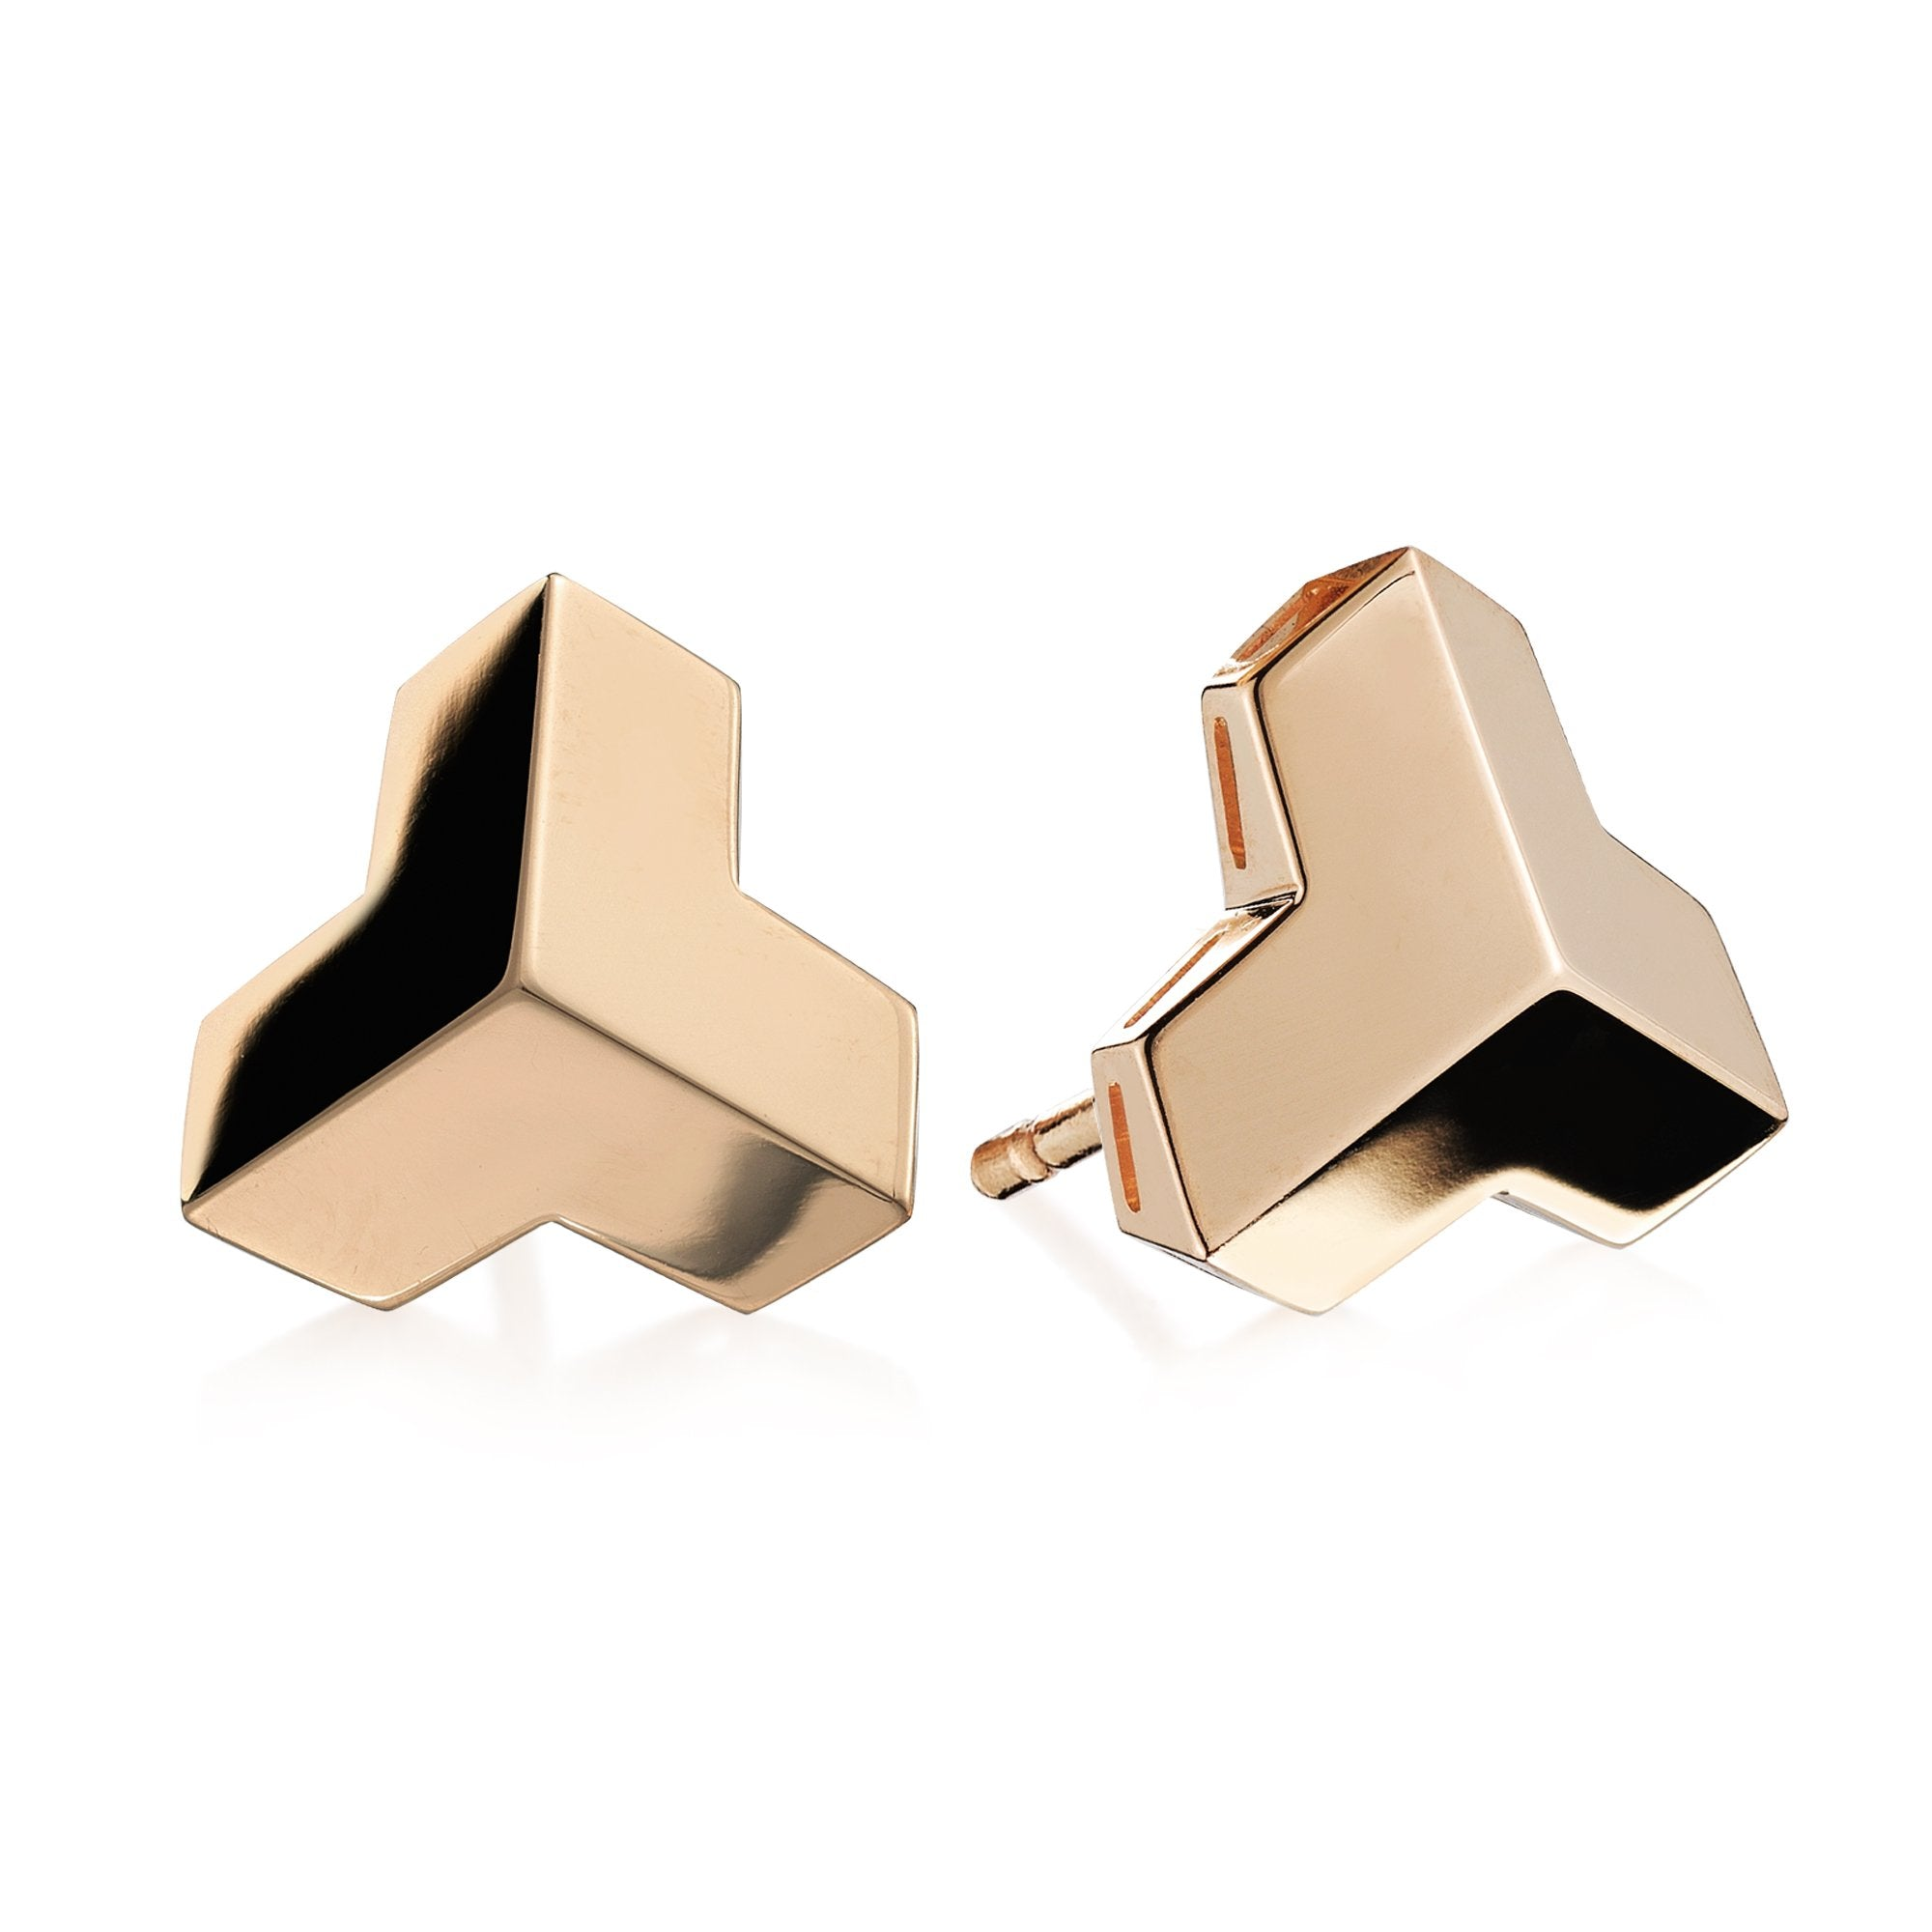 Rose Gold Brillantissimo Stud Earrings, petite - Paolo Costagli